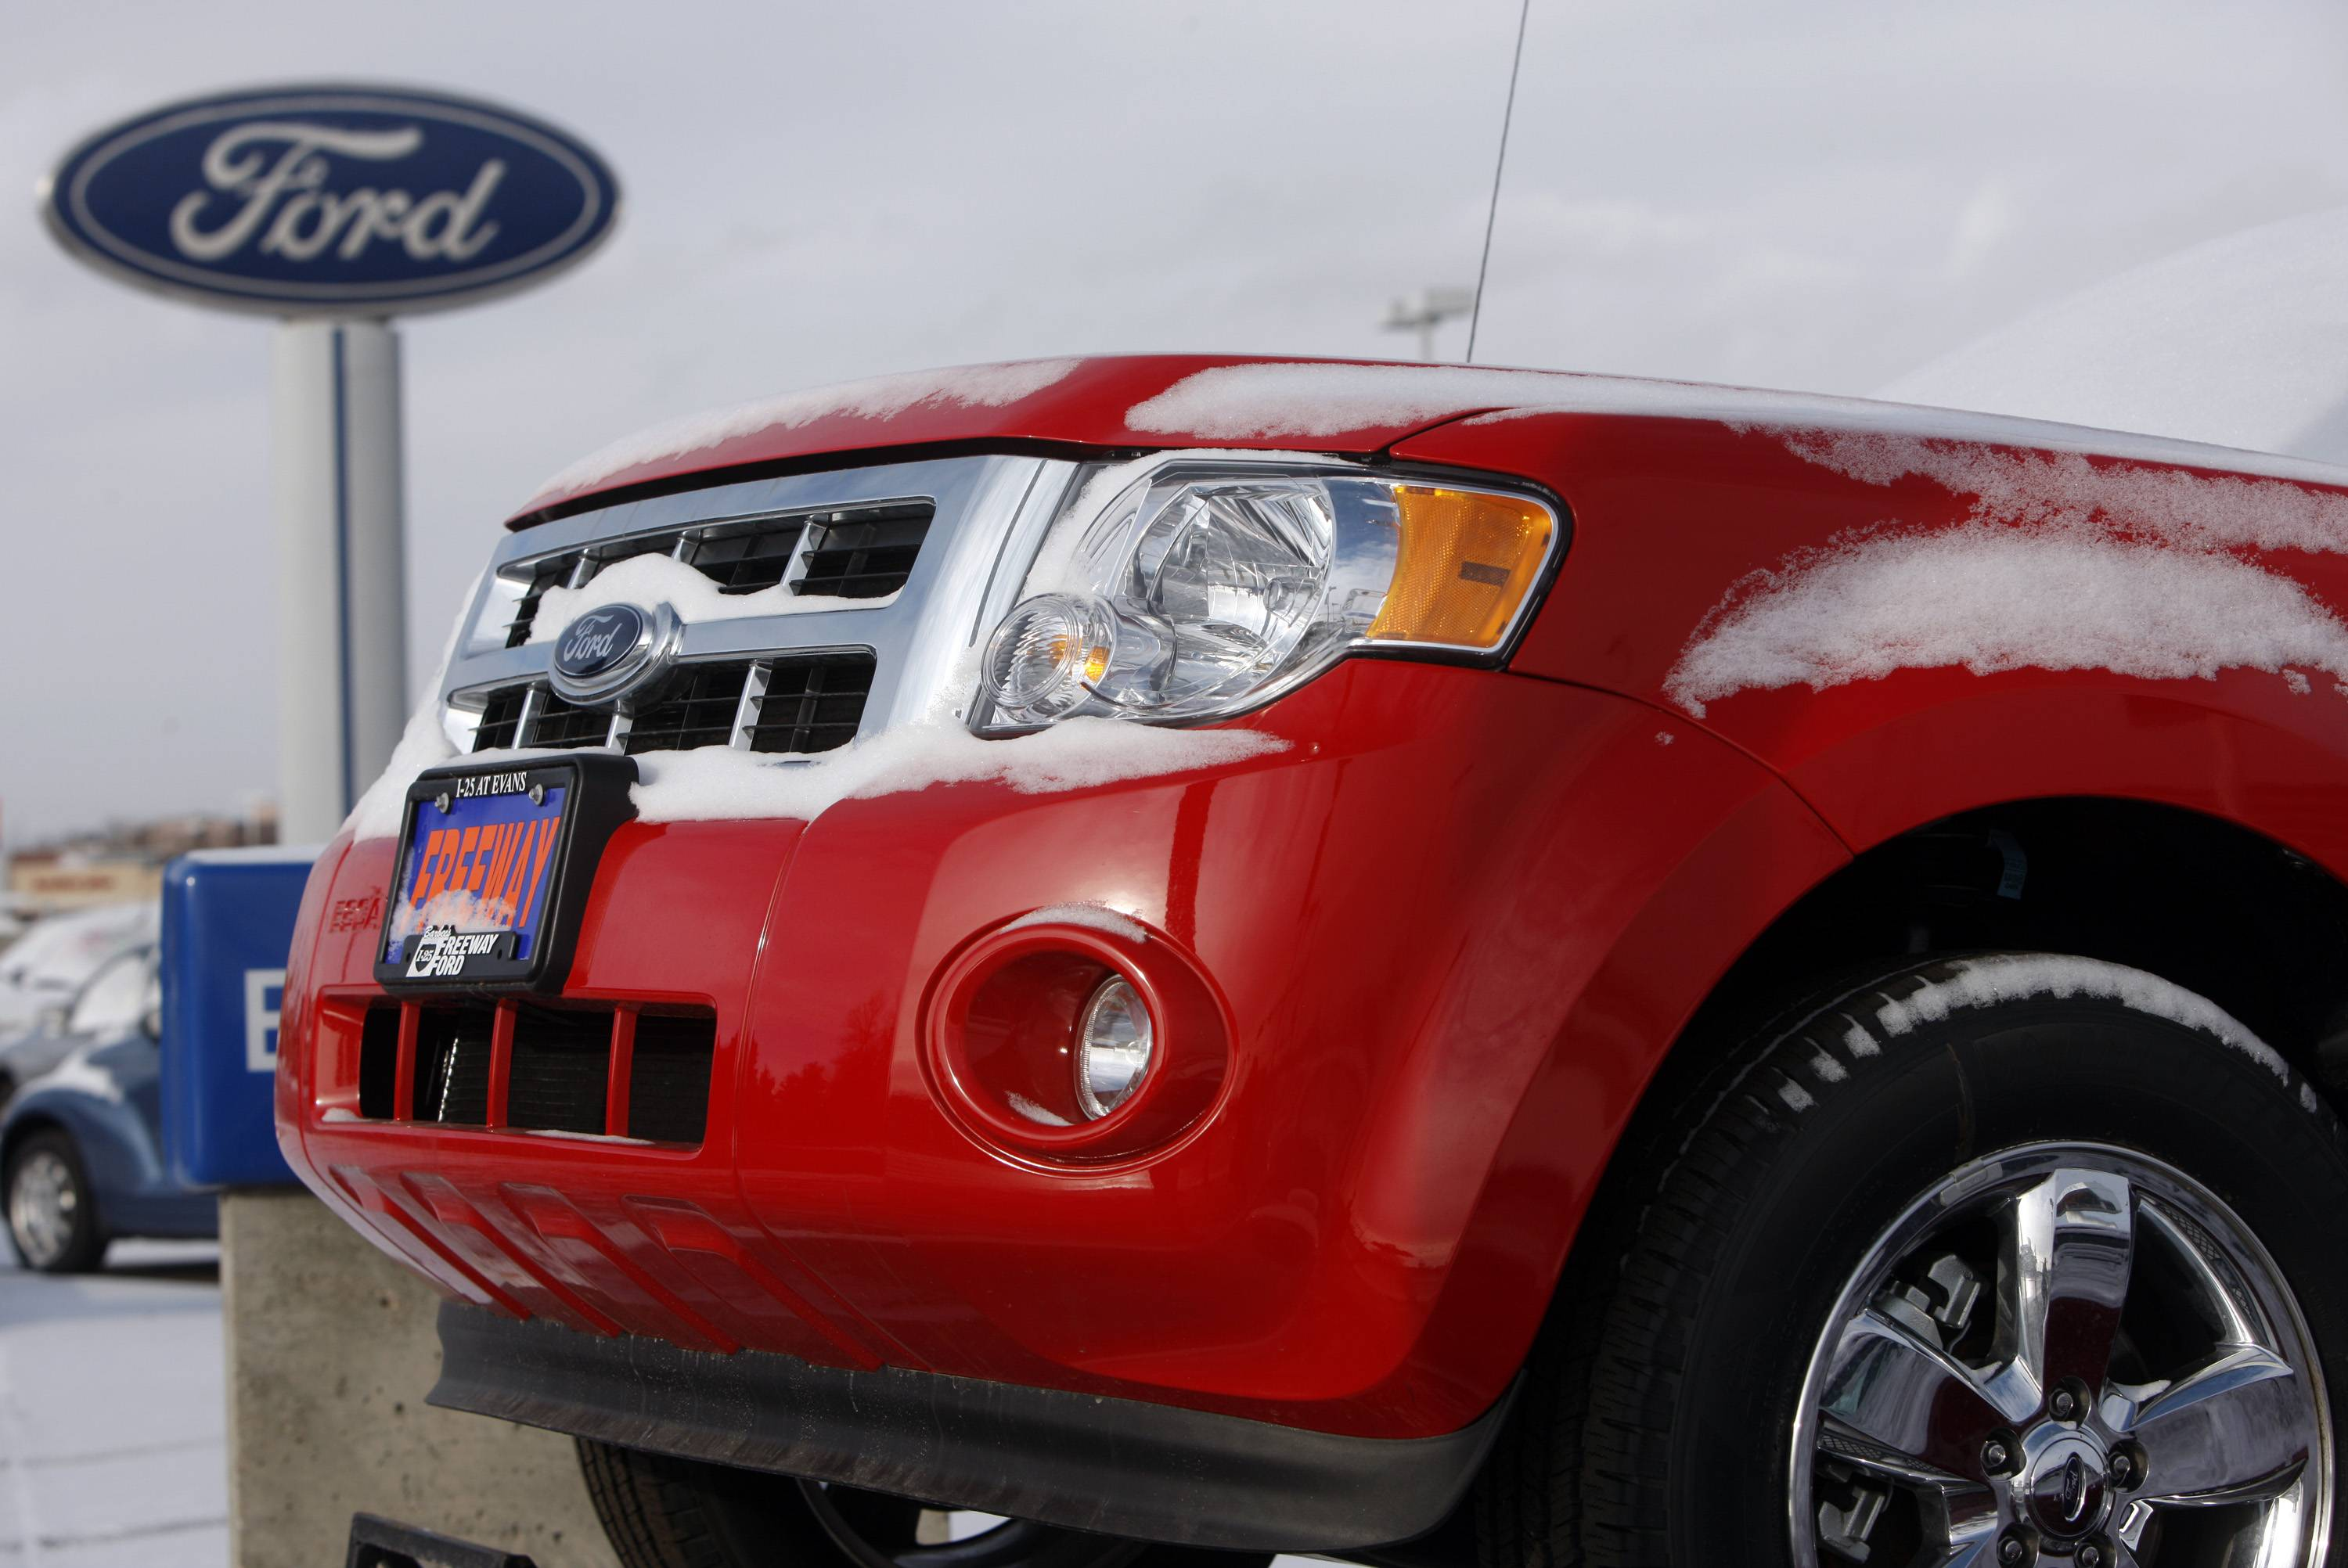 Ford issued two recalls, one affecting 915,000 Ford Escape vehicles from the model years 2008 through 2011.